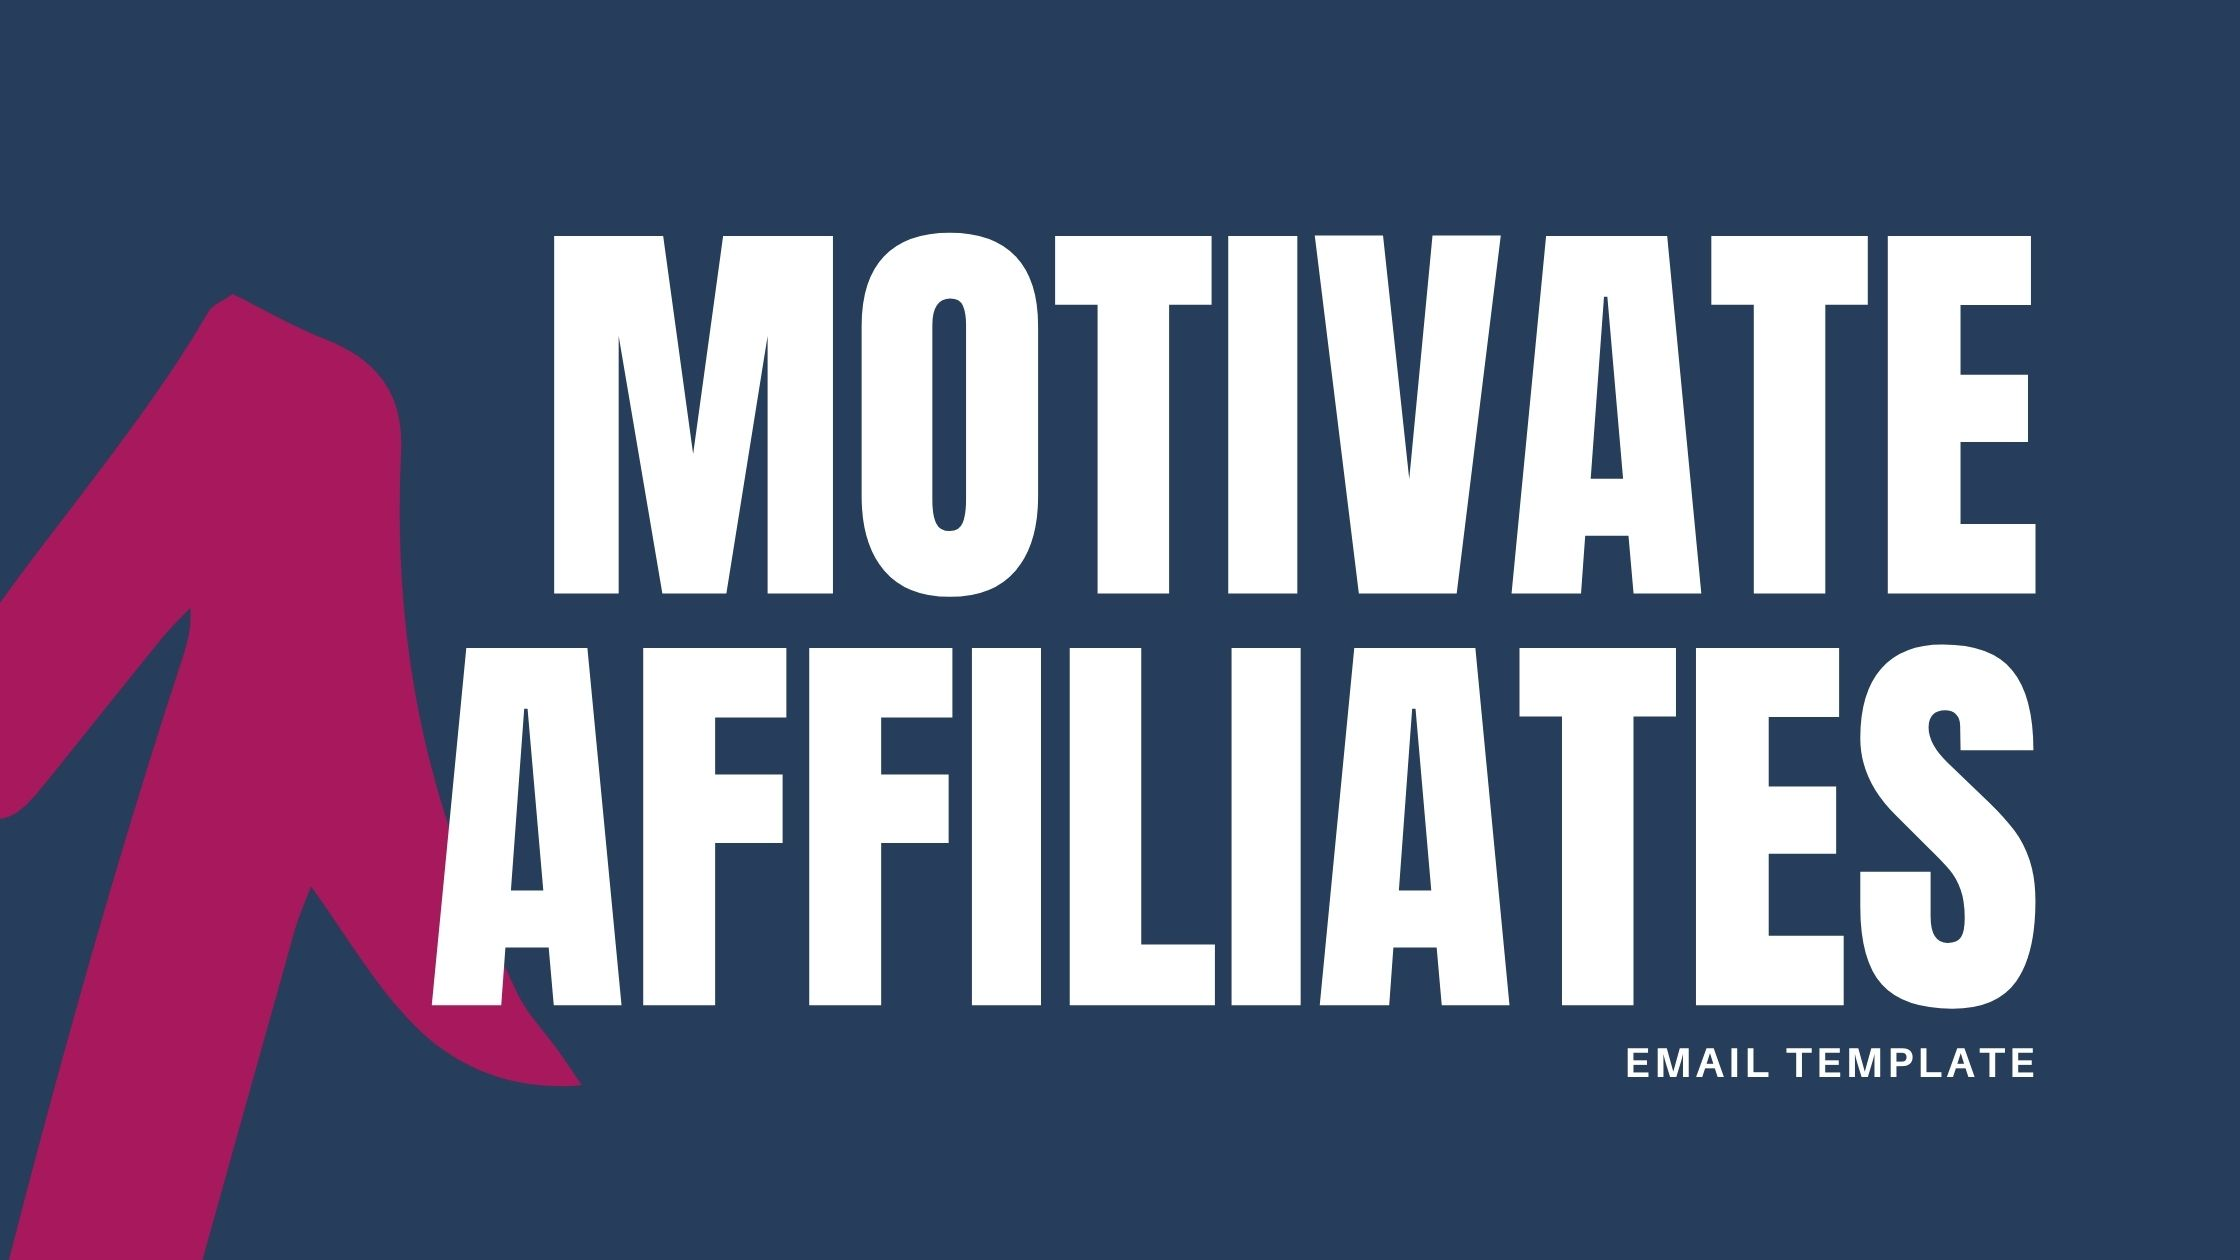 MOTIVATE AFFILIATES EMAIL TEMPLATE